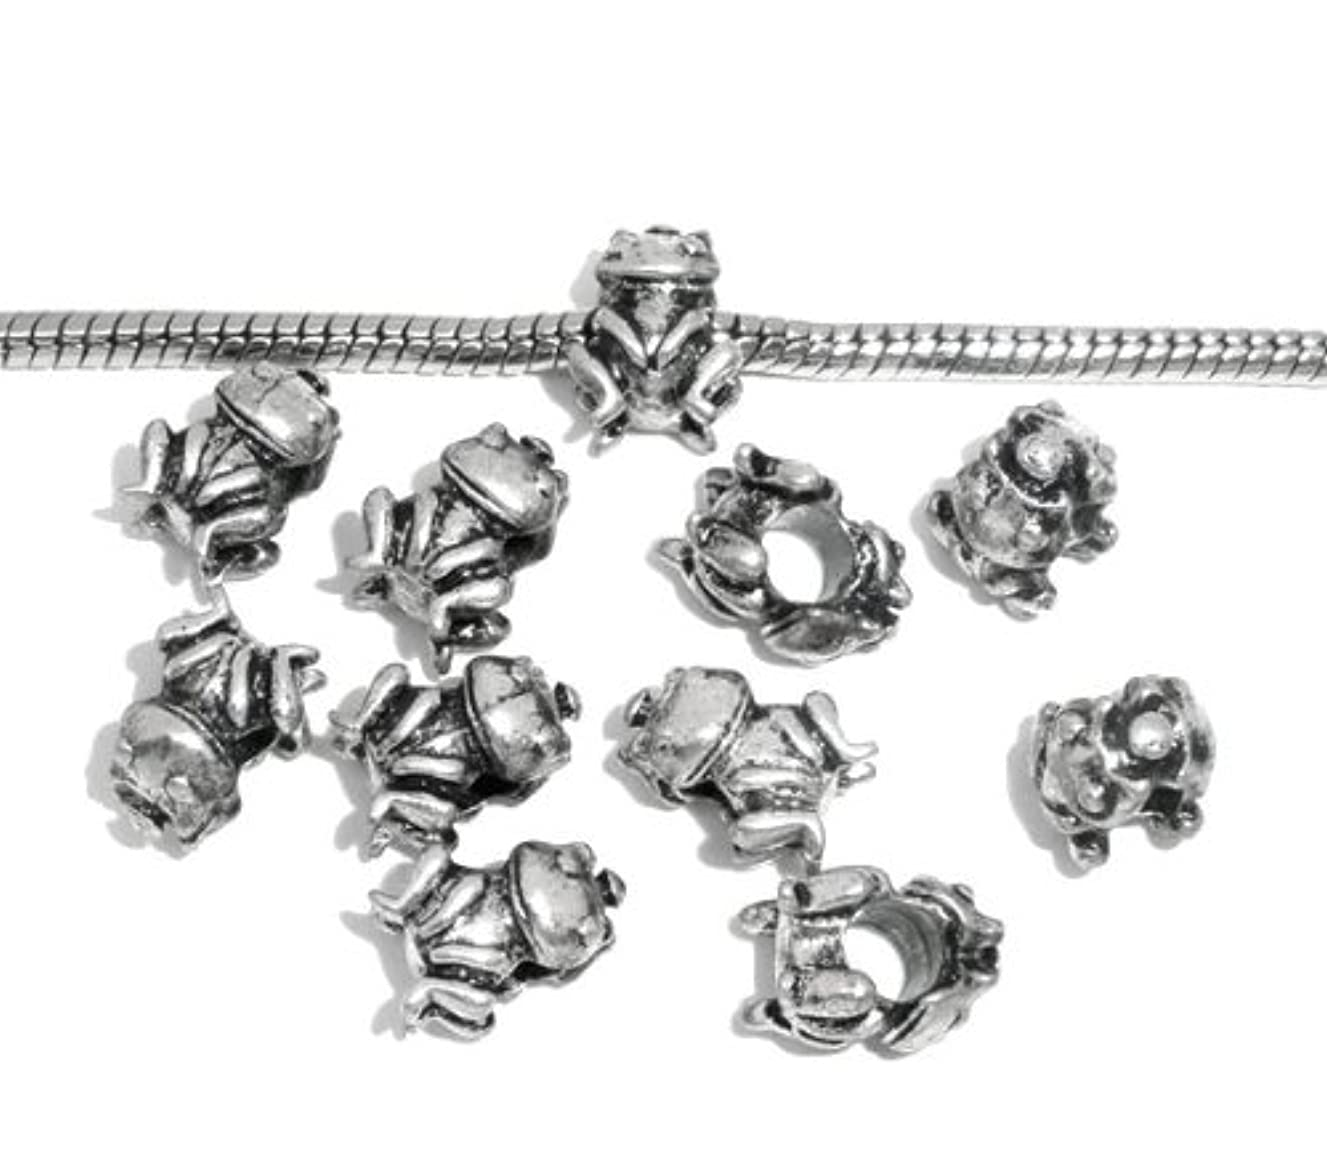 PEPPERLONELY Brand 3PC Antique Silver Frog Charm Beads Fit European Bracelet 1/2 x 5/16 Inch ( 12MM x 8MM )